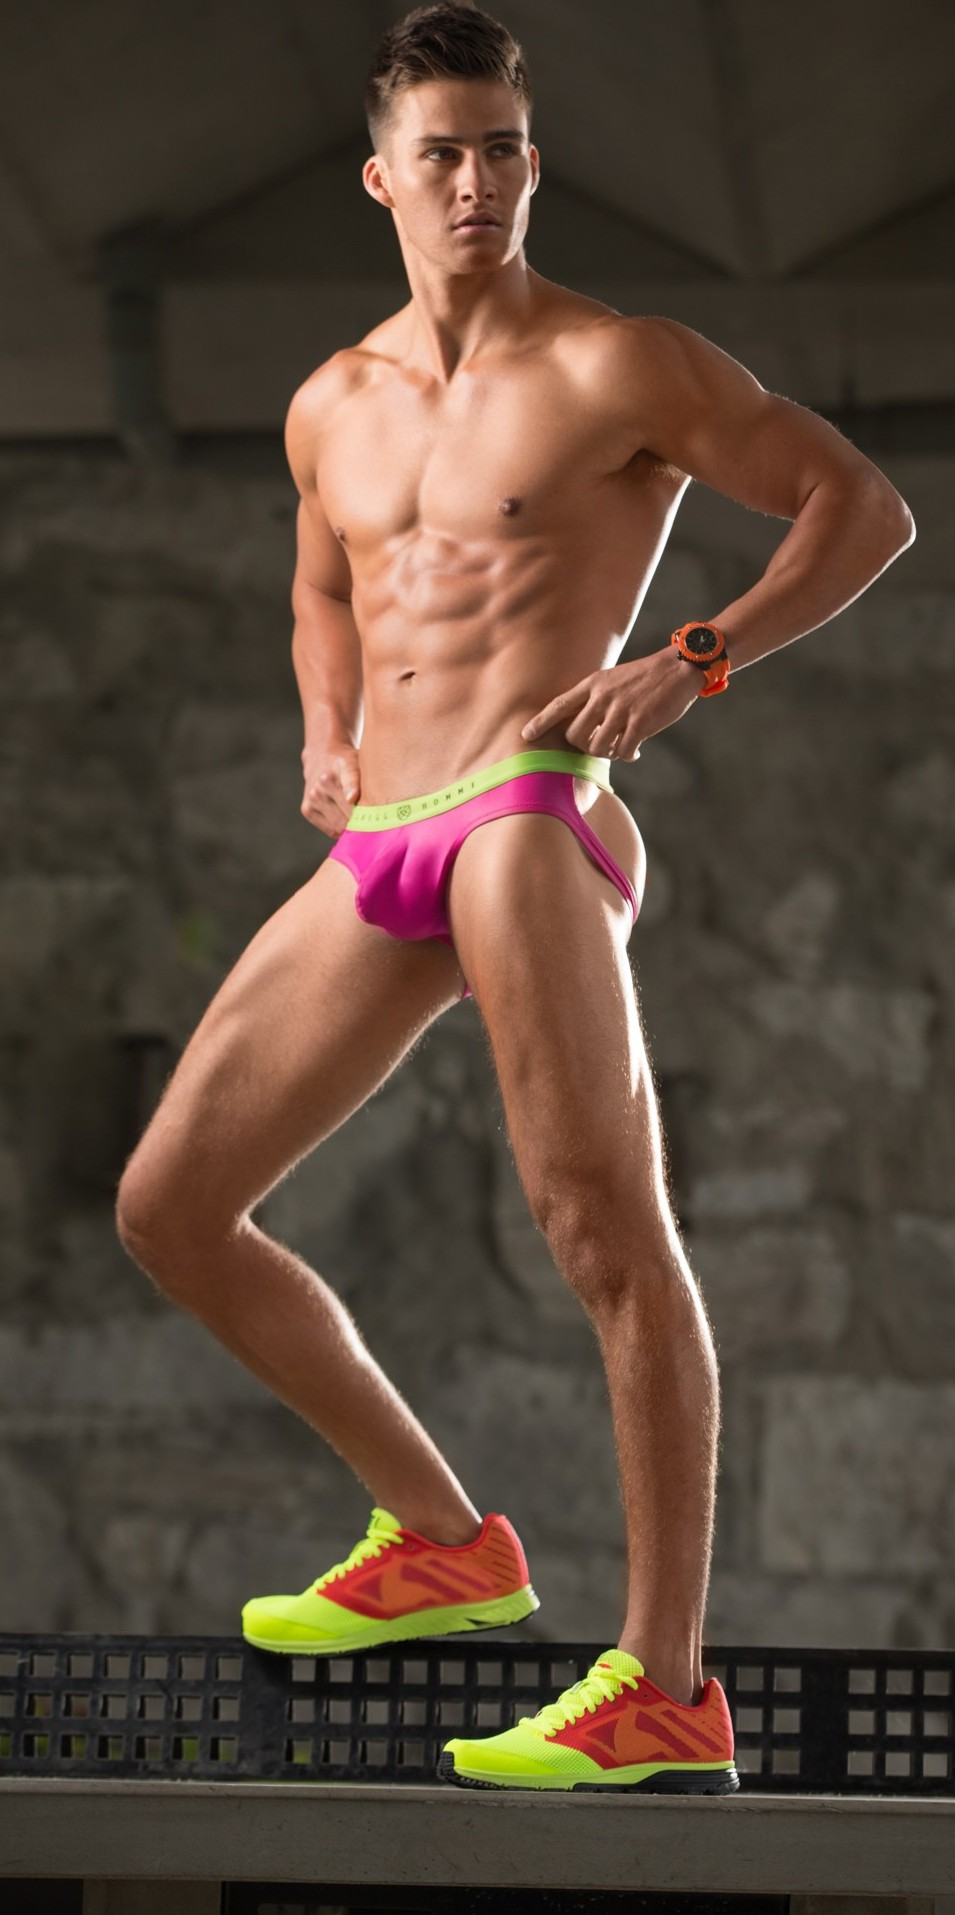 You might not look as ripped as this guy in the Heatwave Jock Strap, but you're guaranteed to feel damned fine. Hot even.